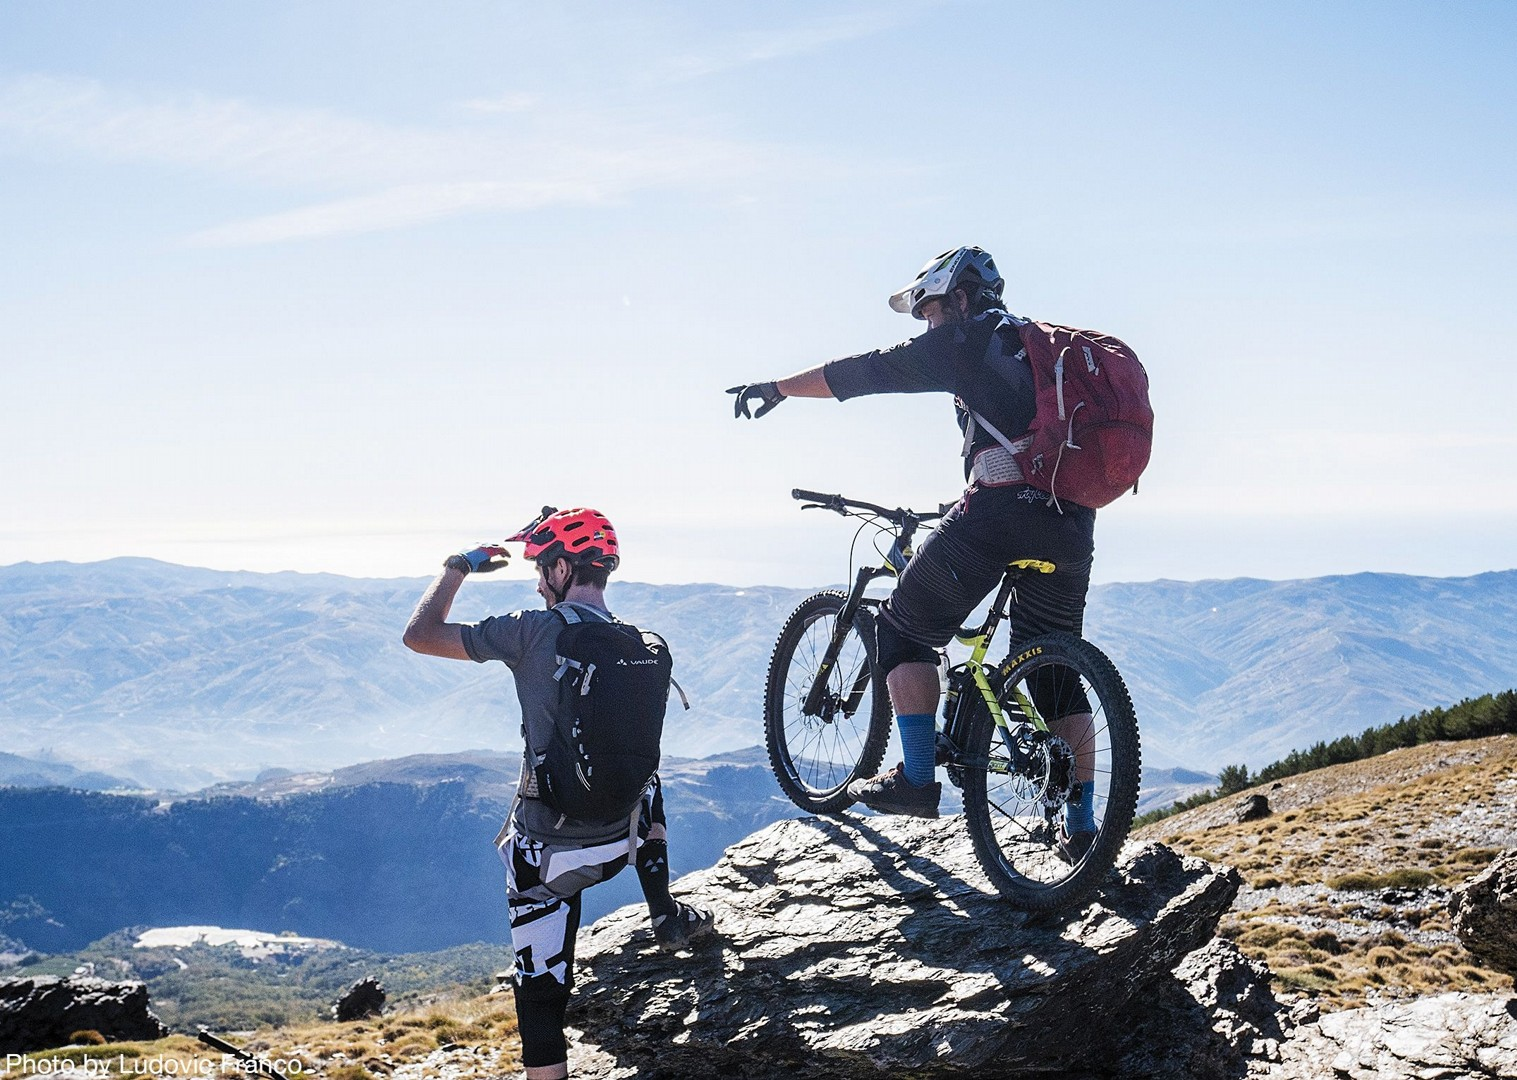 mountain-biking-holiday-in-spain-sierra-nevada-skedaddle.jpg - Spain - Sensational Sierra Nevada - Guided Mountain Bike Holiday - Mountain Biking